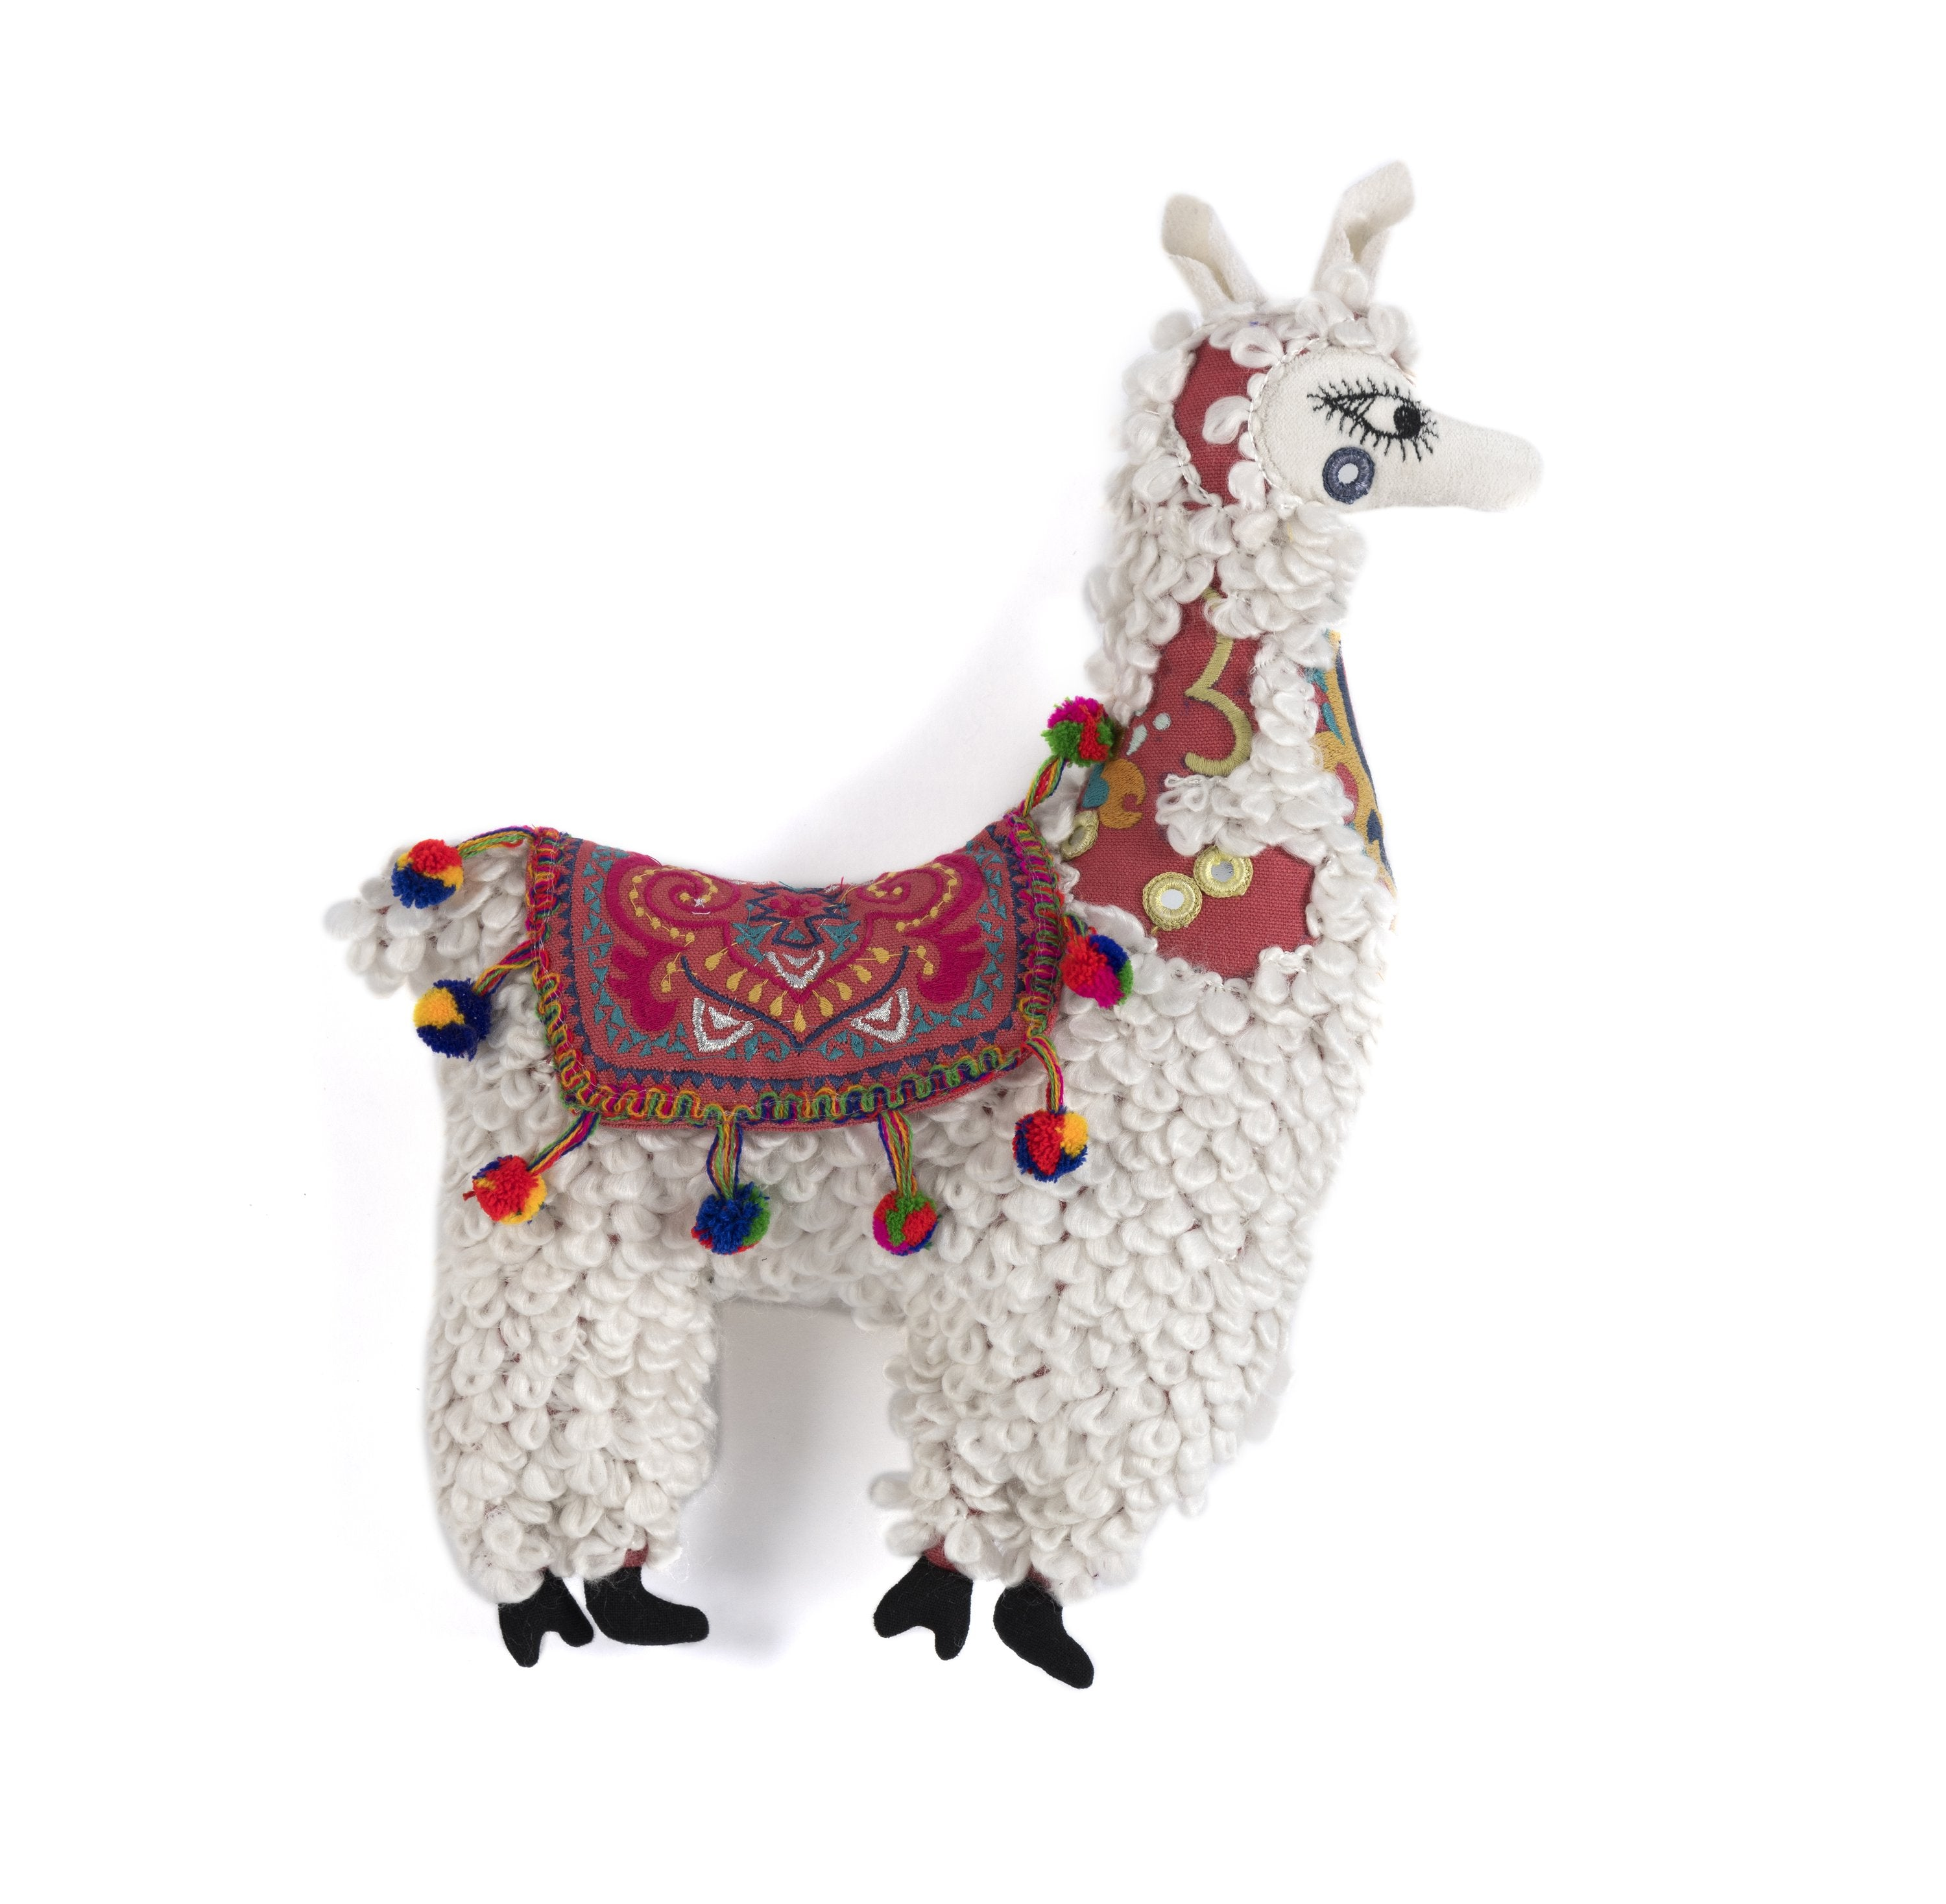 Cotton Llama Pillow